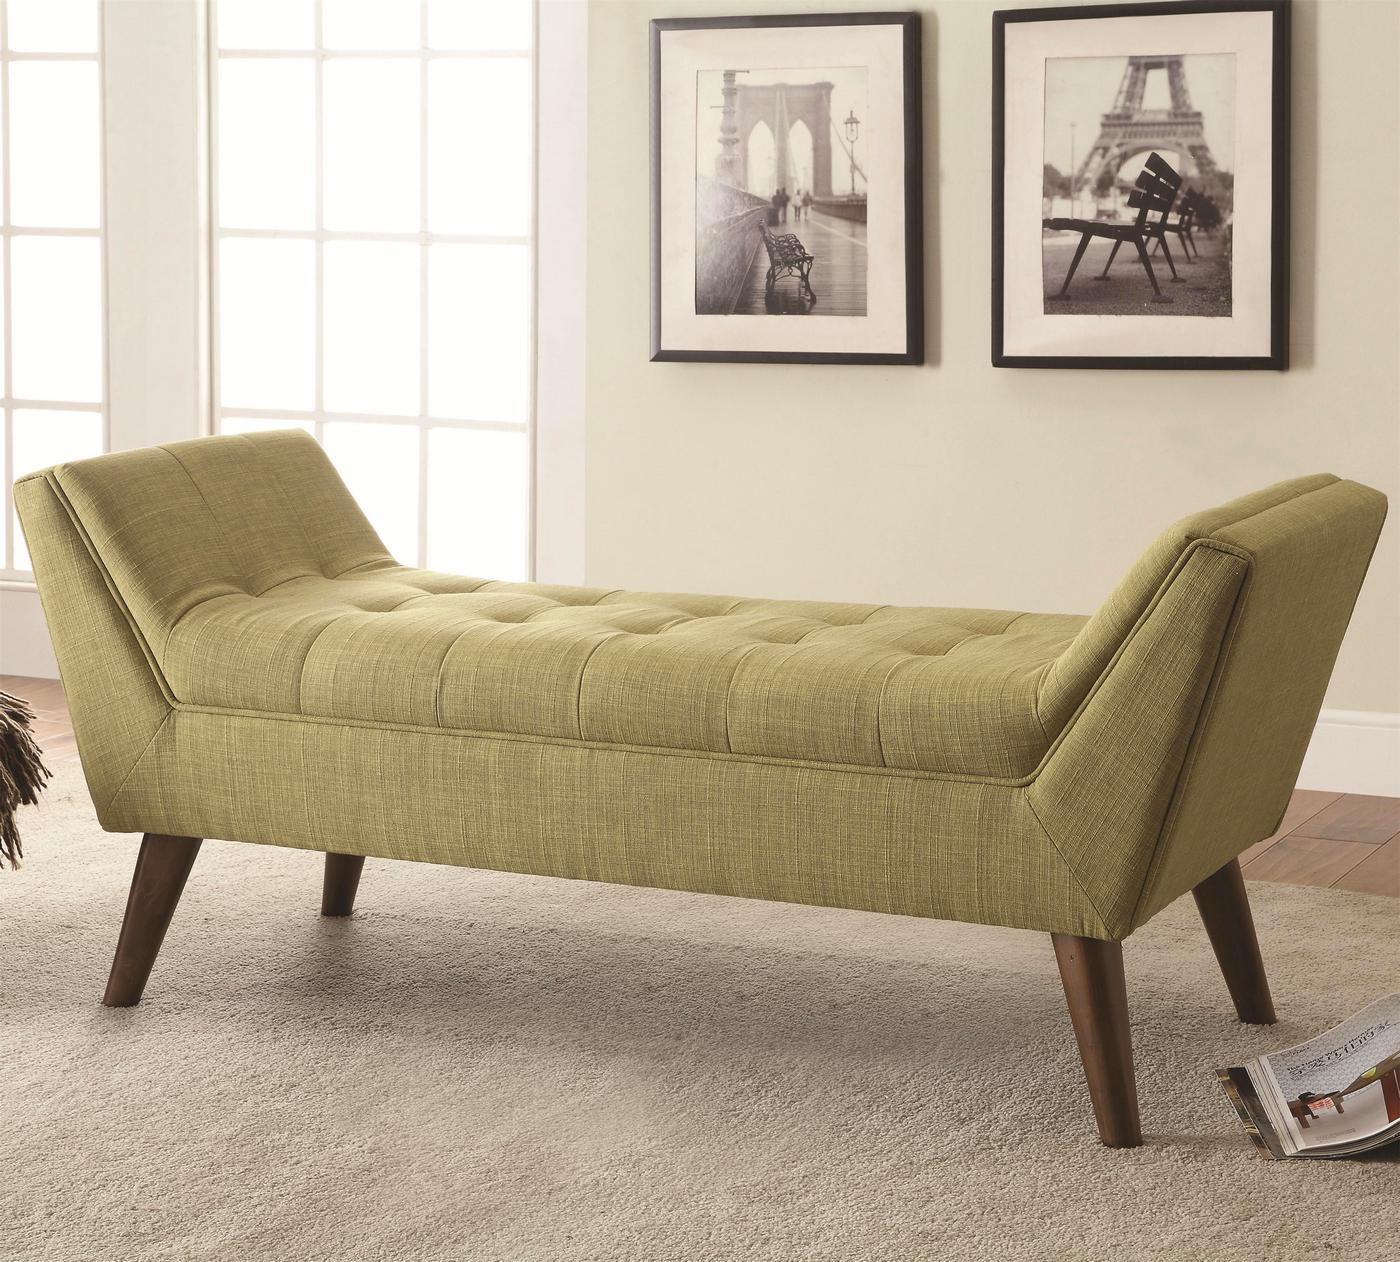 Mid Century Modern Design Tufted Upholstery Bed Bench